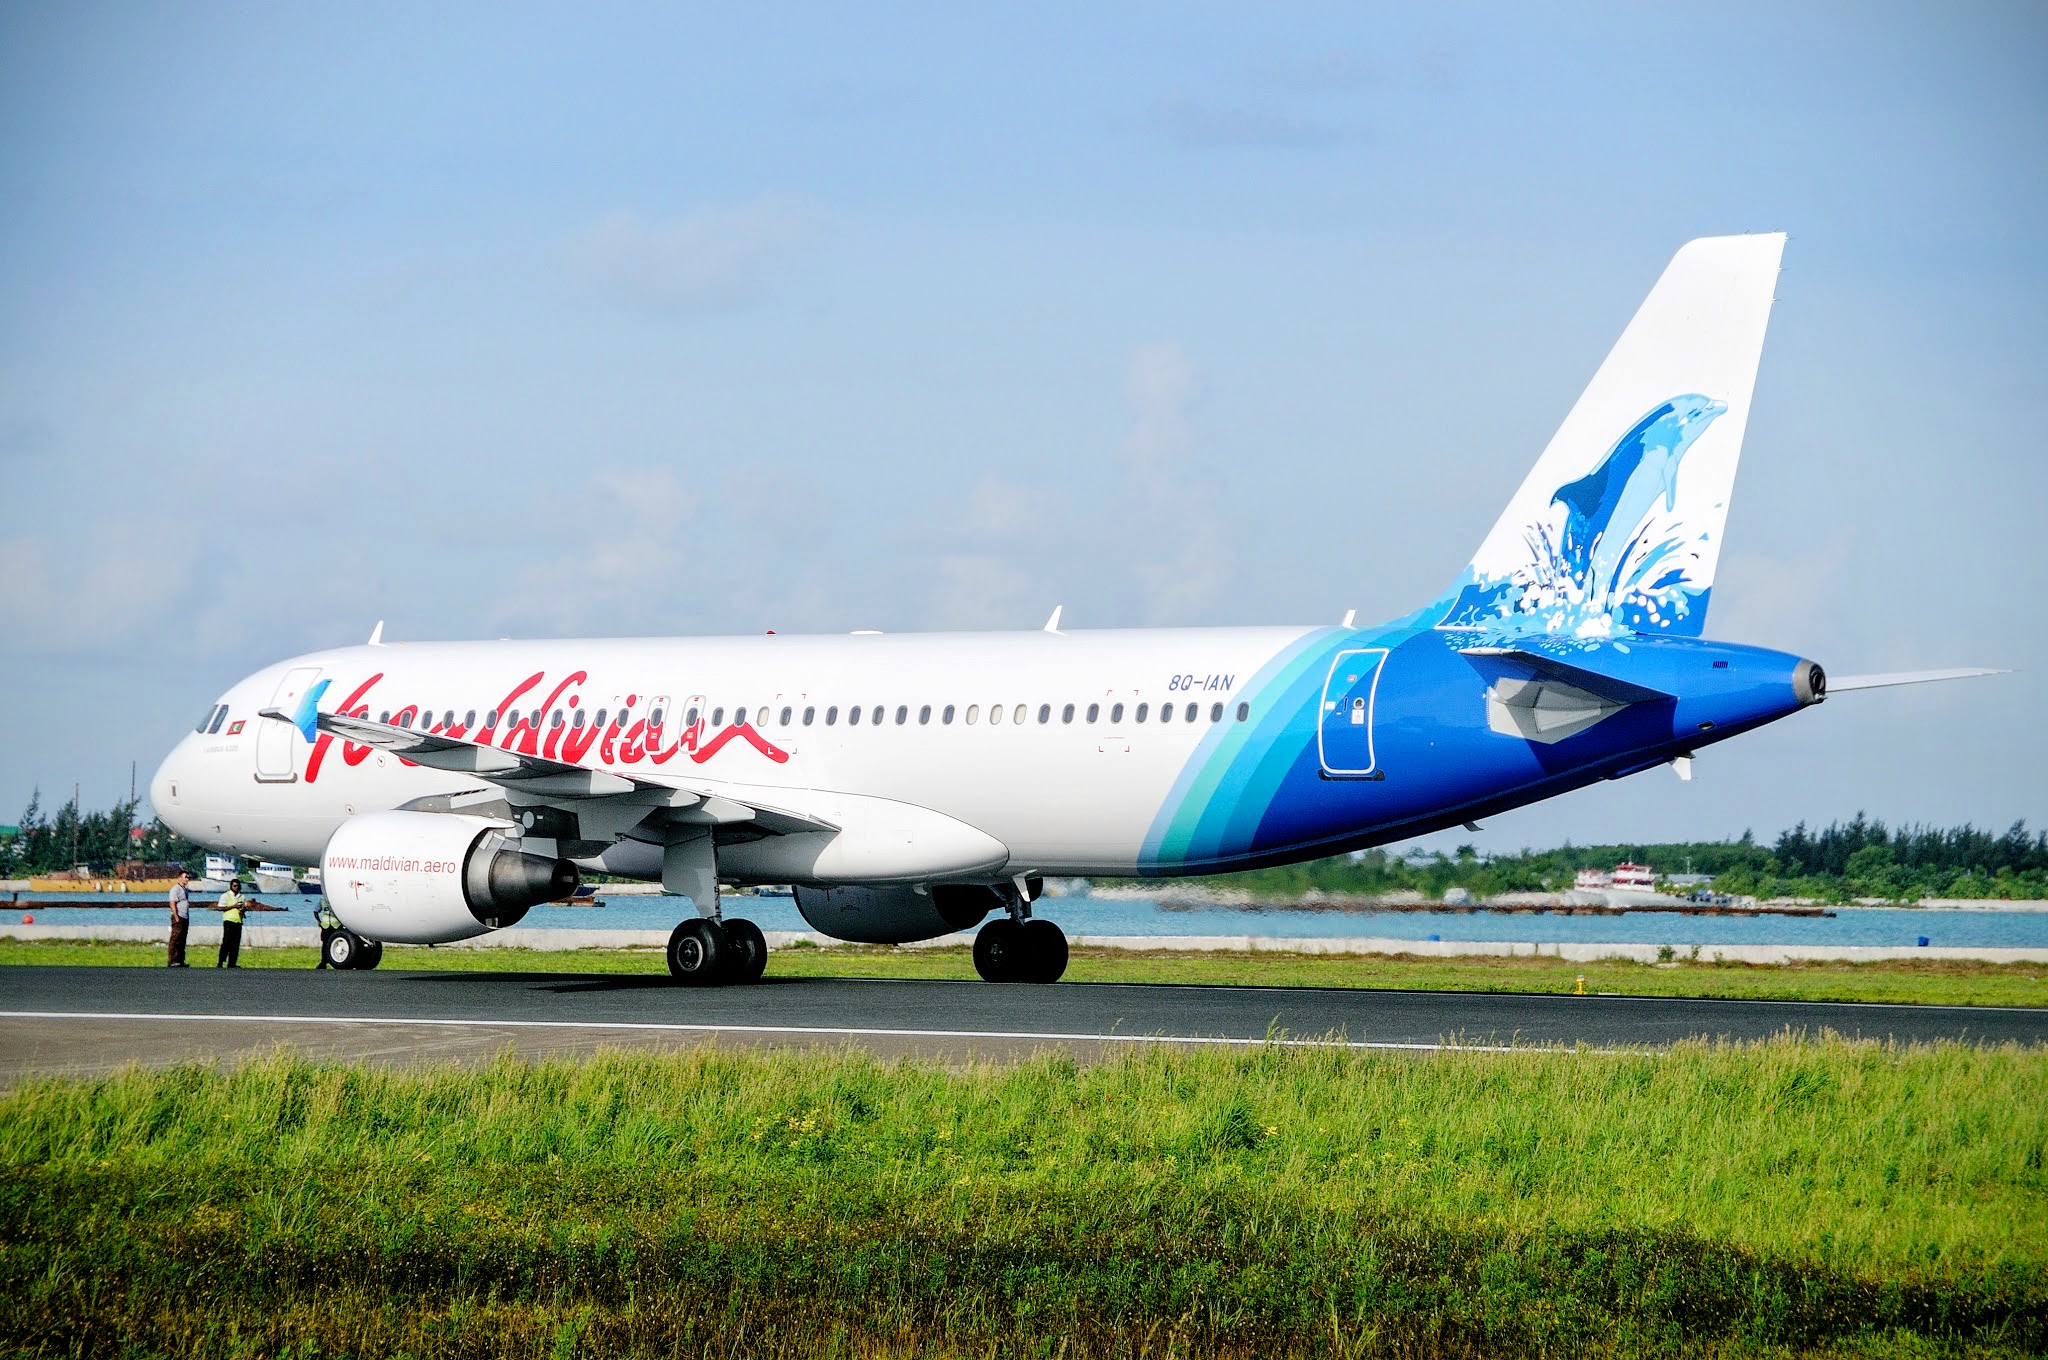 China - Maldives flights Maldivian